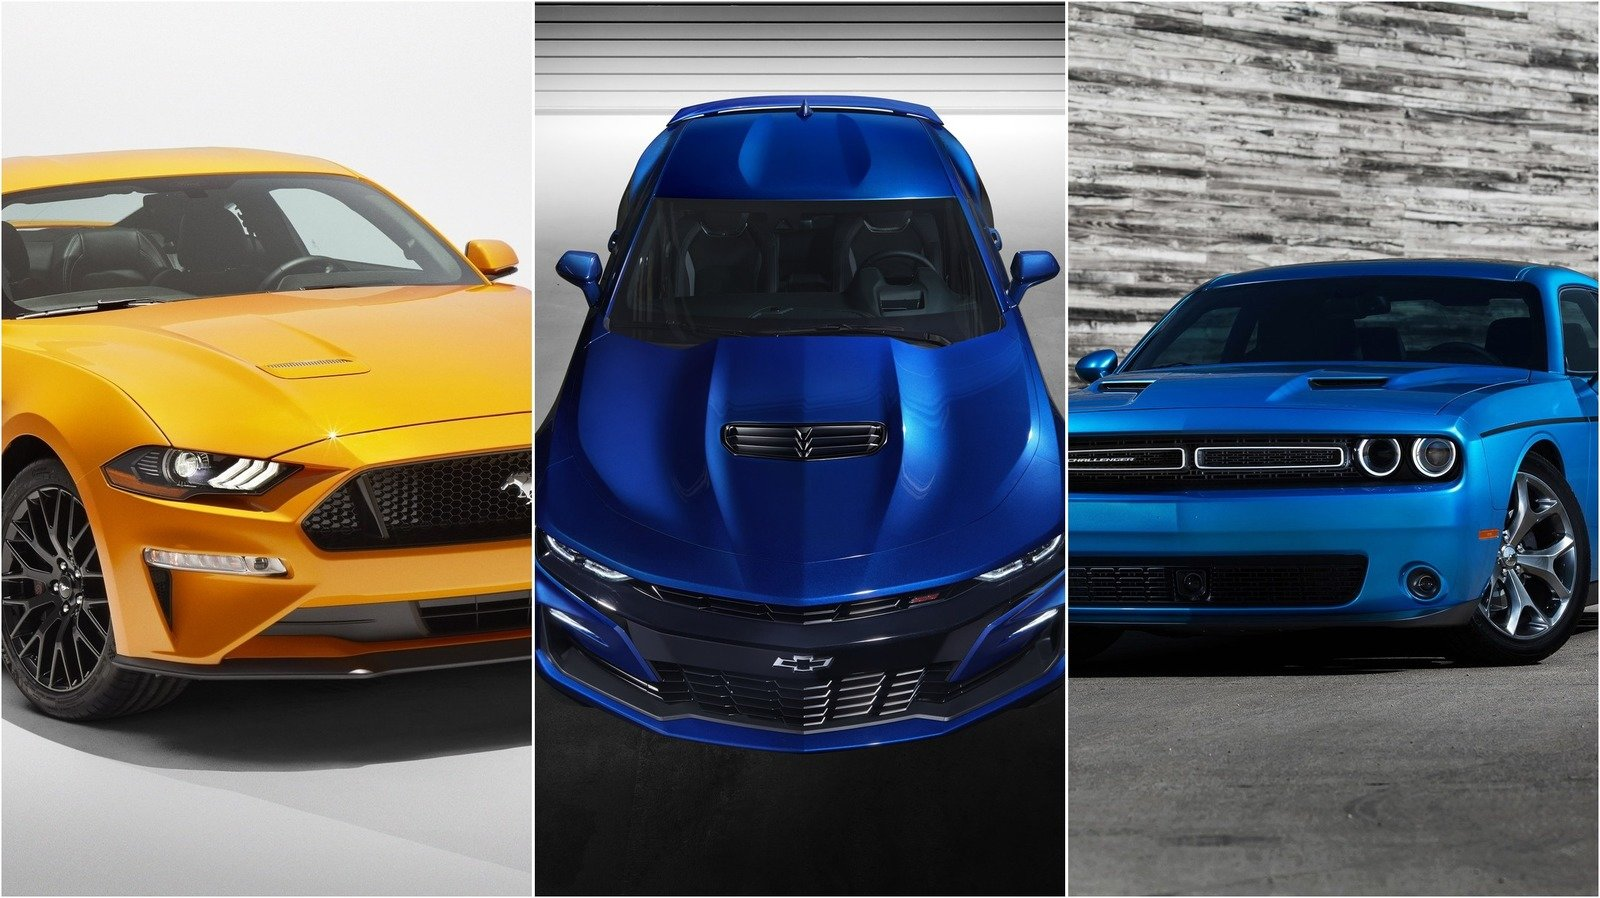 Camaro Vs Mustang >> Dodge Challenger Emerges Out Of Chevrolet Camaro's Shadow ...